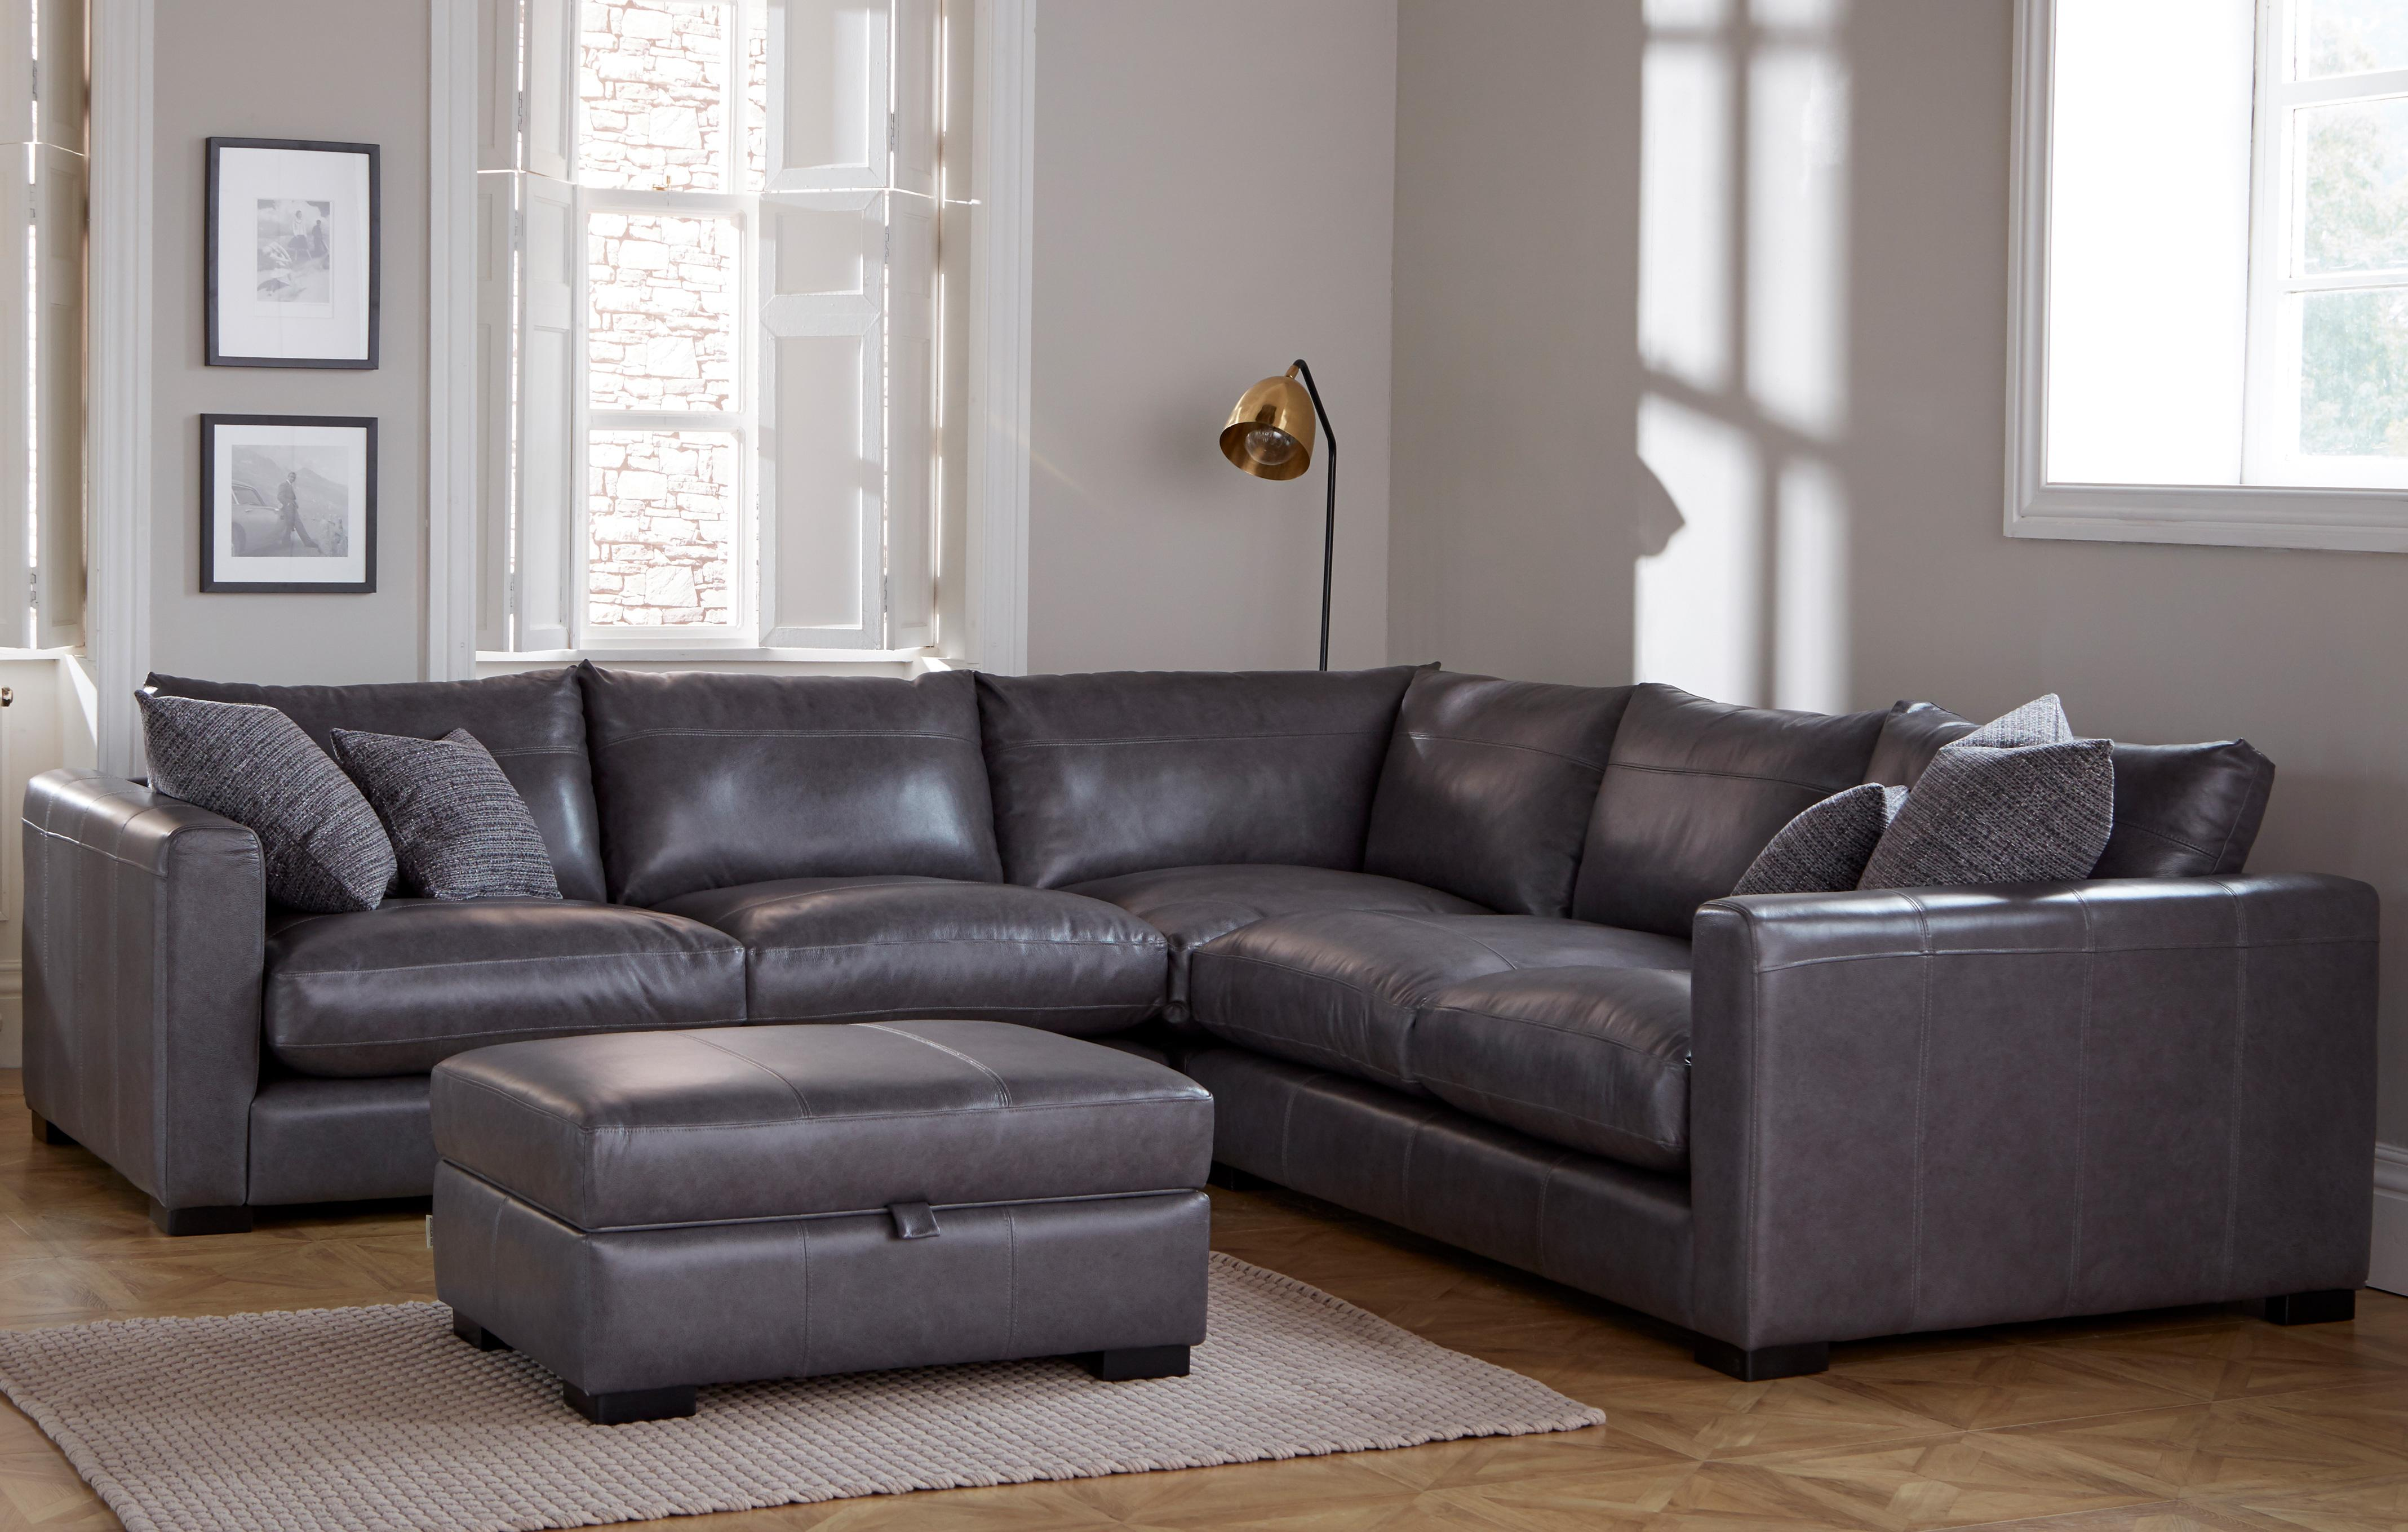 leather sofas dfs contemporary living room grey sofa sales and deals winter sale dillon small corner workshop